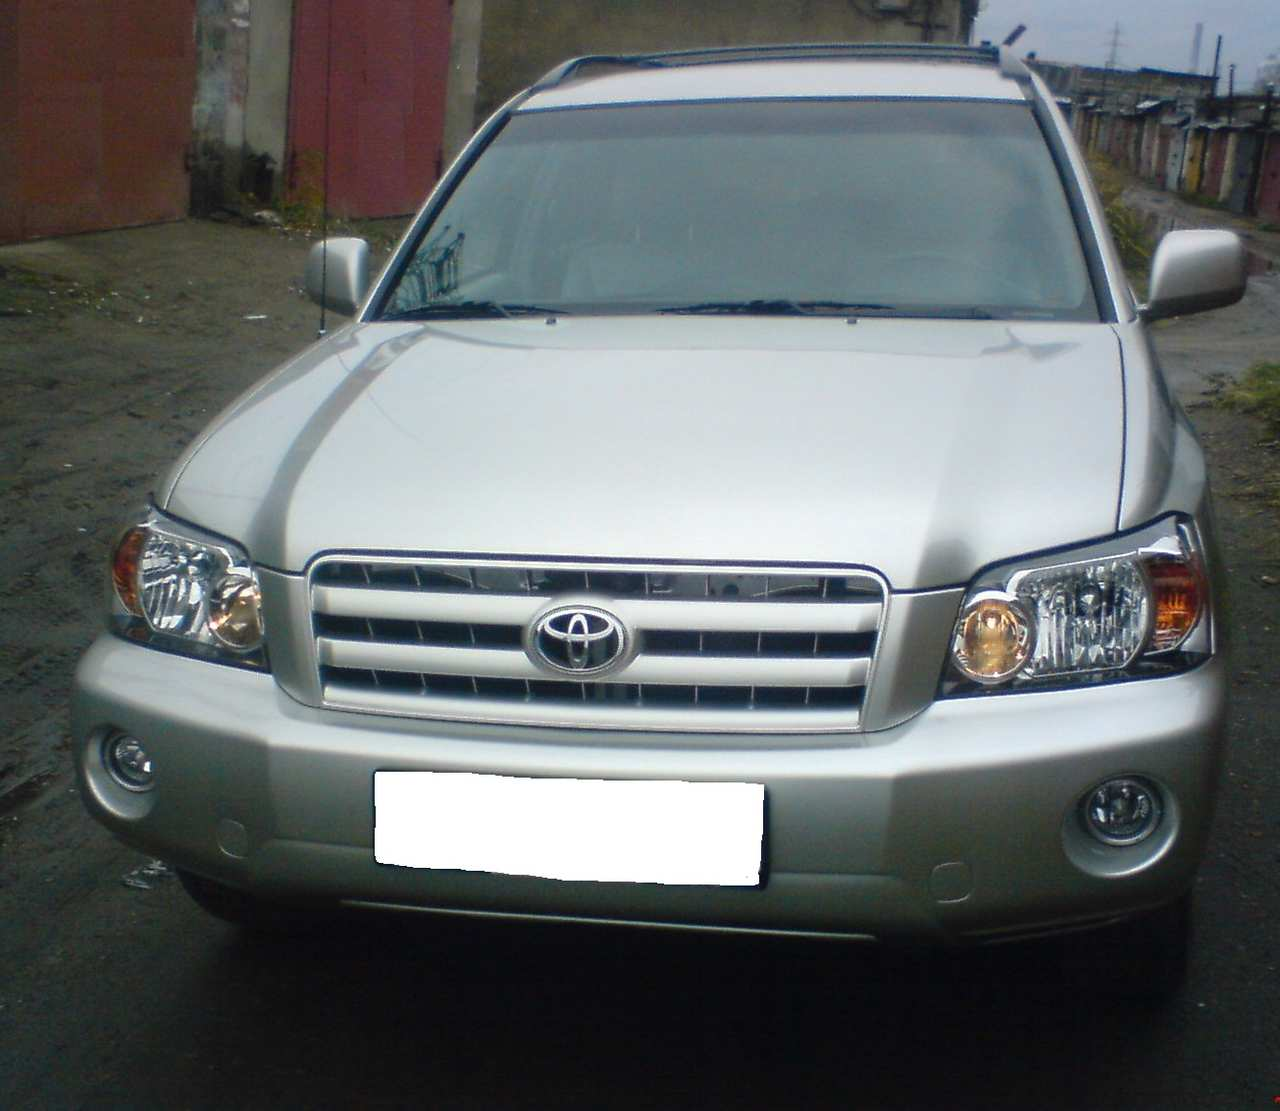 Pictures Of Toyota Highlander: 2005 Toyota Highlander Pictures, Gasoline, FF, Automatic